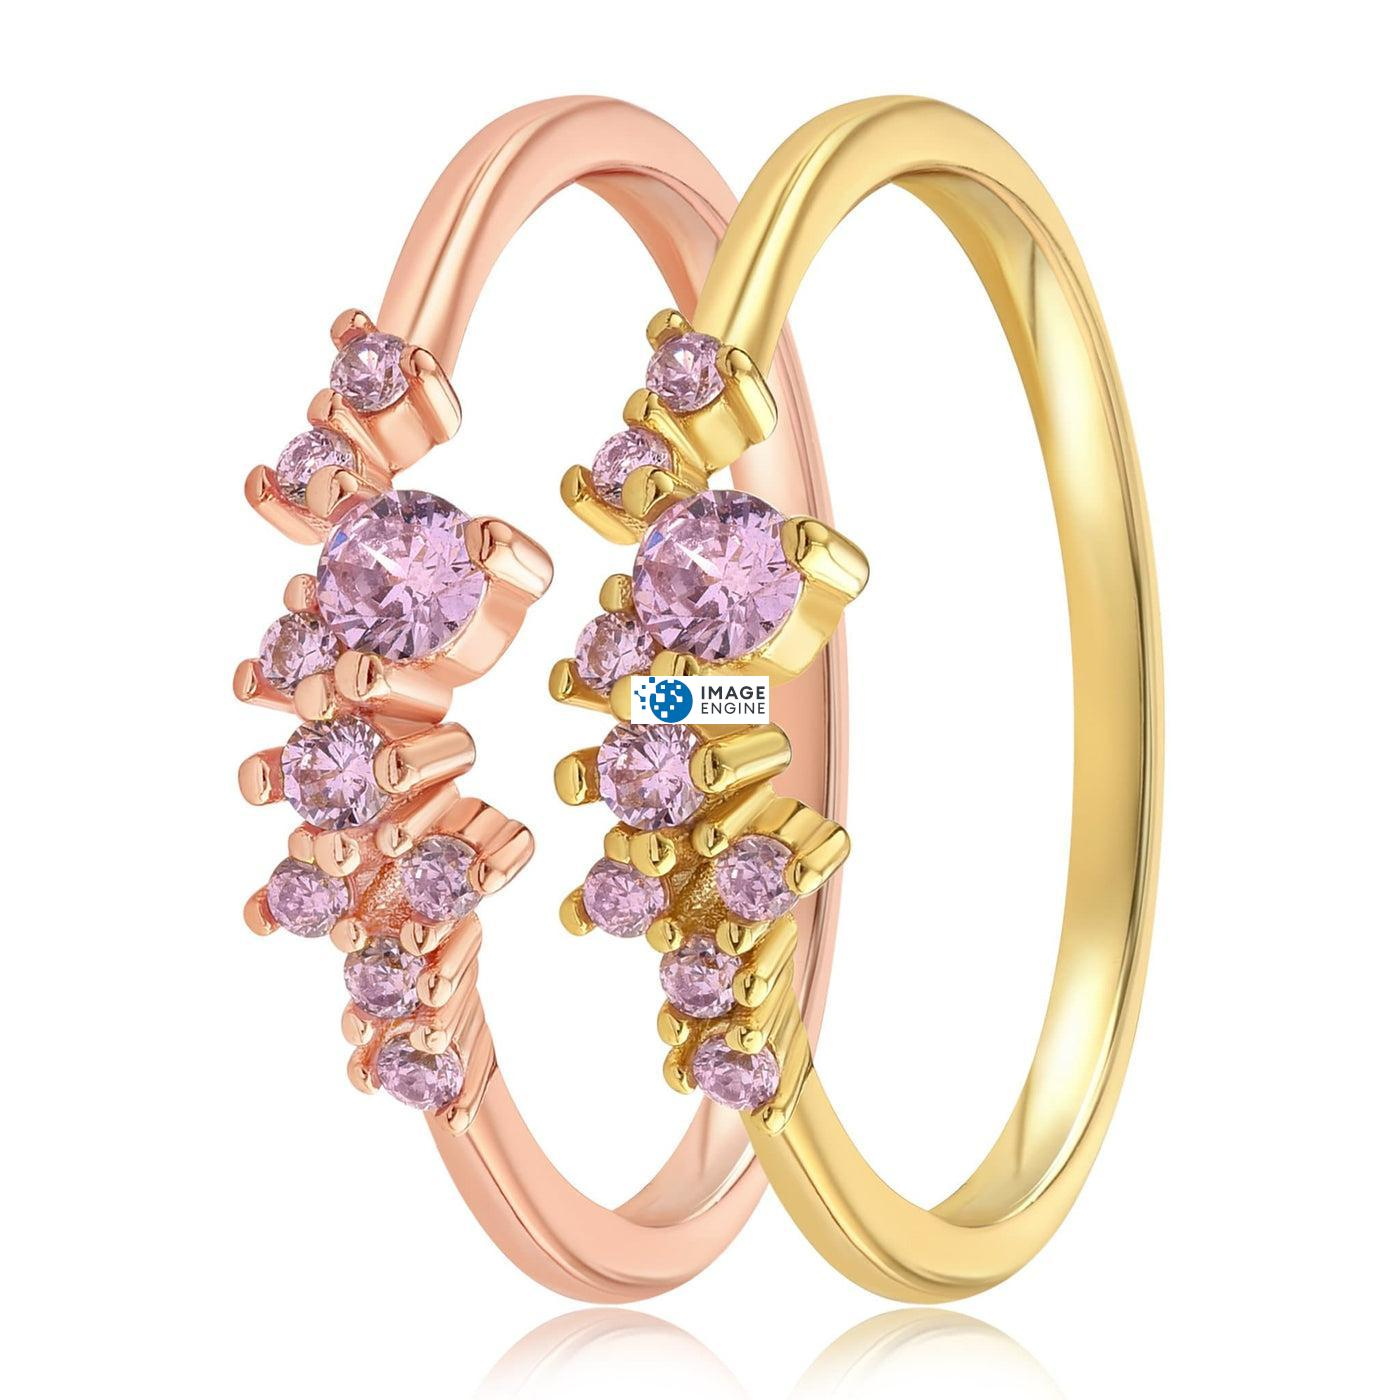 Rose Quartz Cluster Ring - Side by Side - 18K Yellow Gold Vermeil and 18K Rose Gold Vermeil